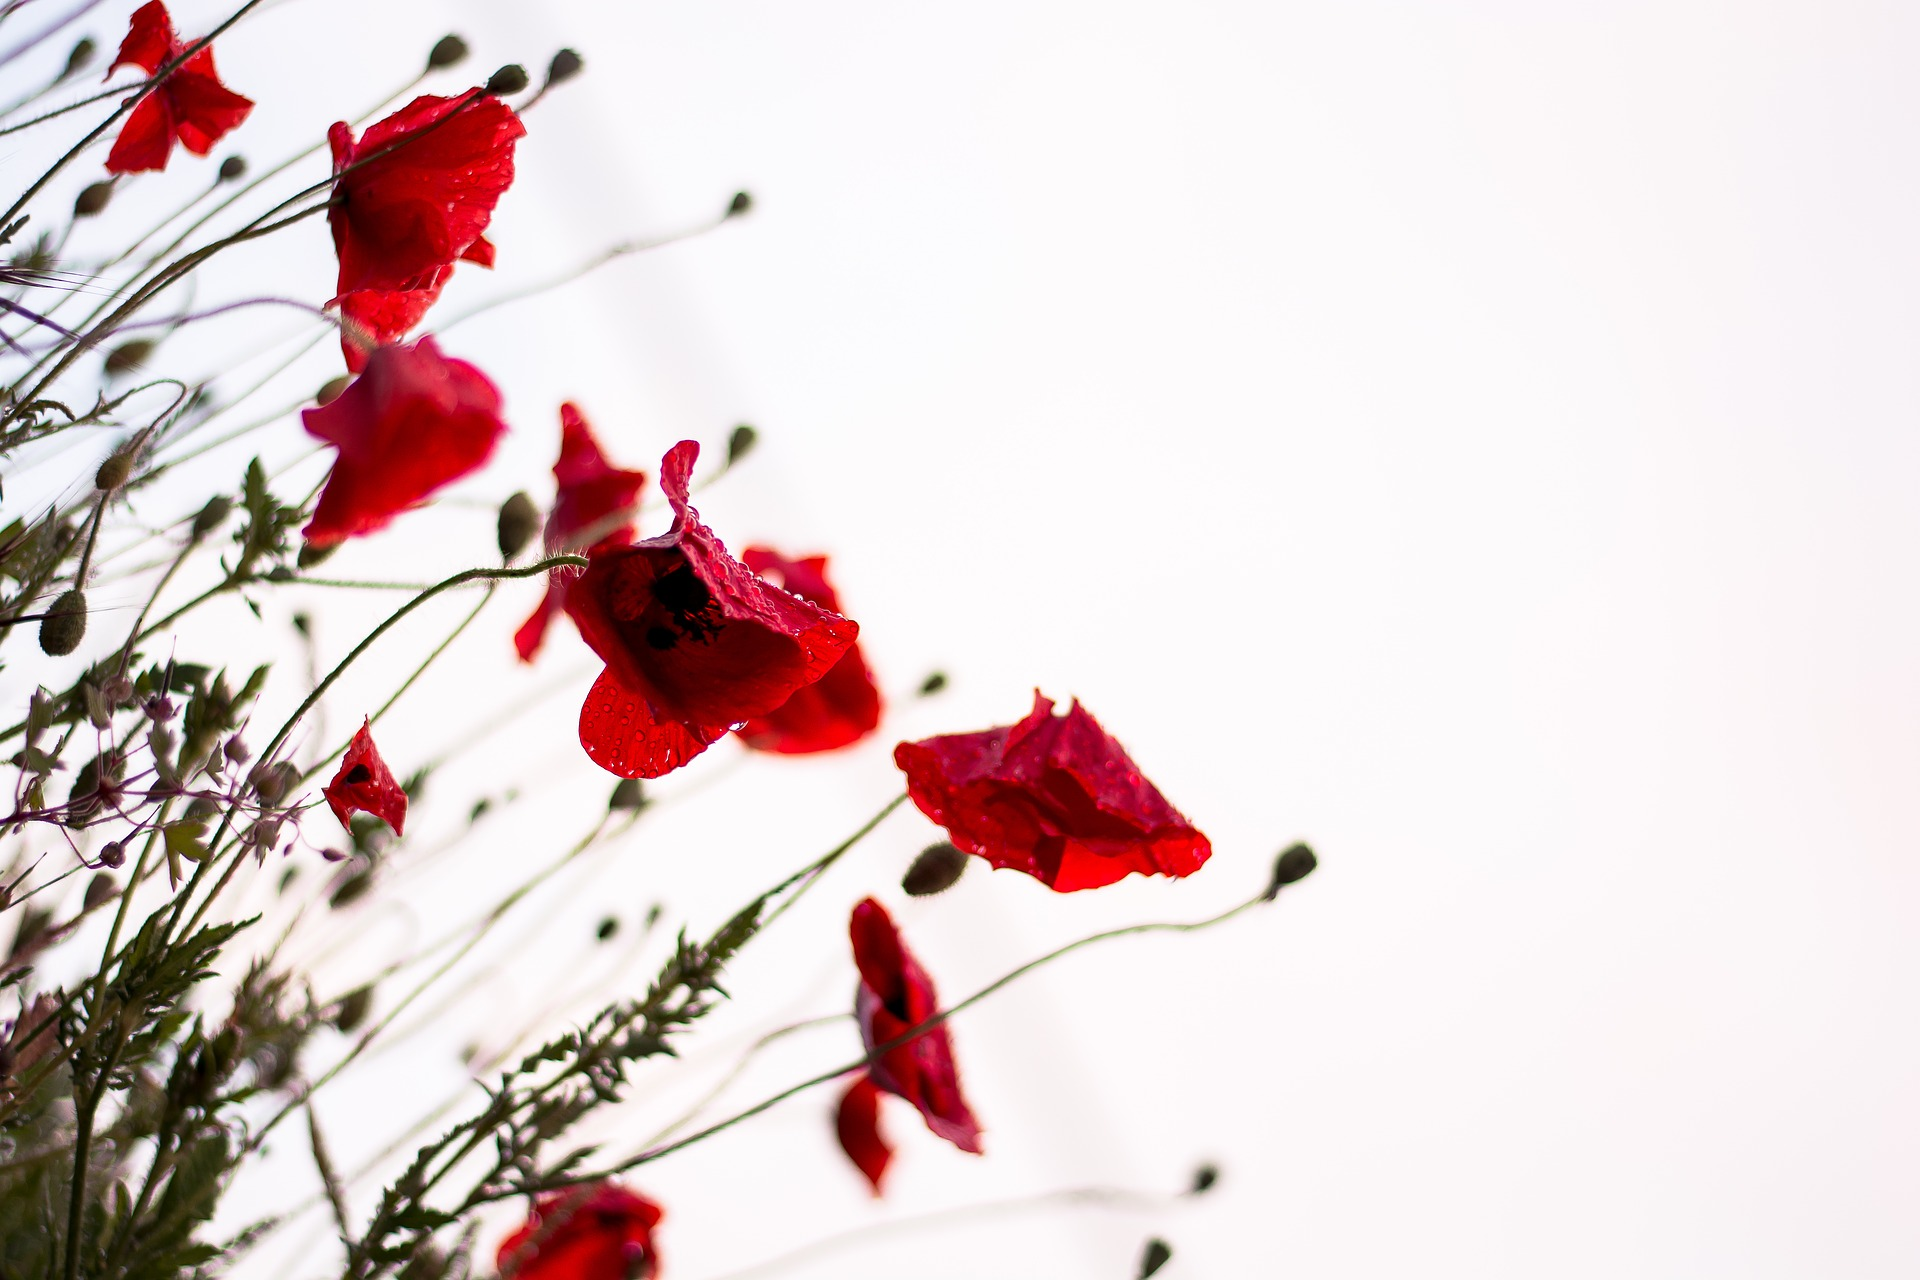 Photo of poppies in bloom